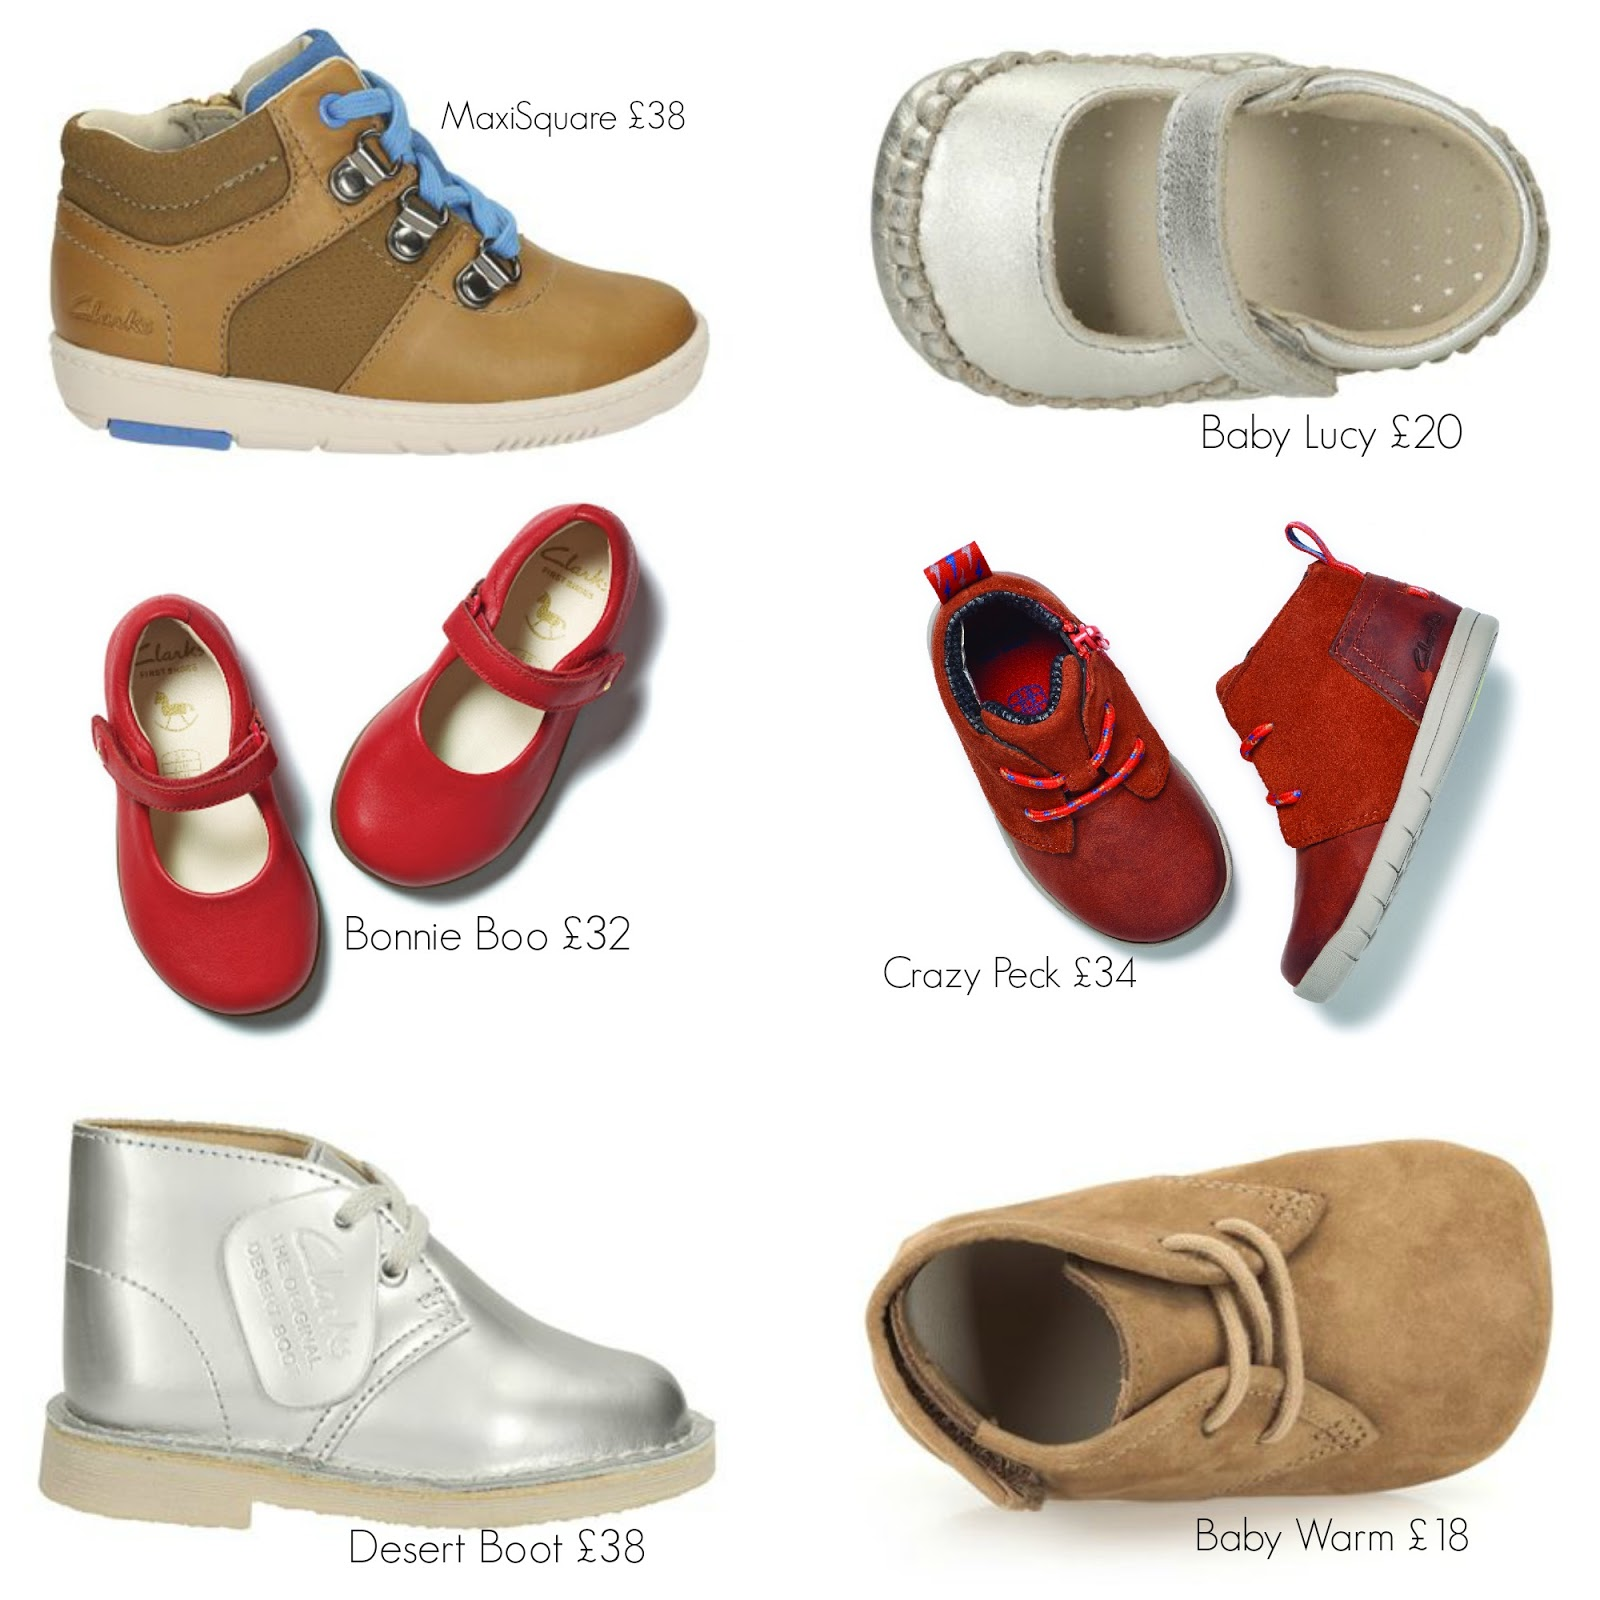 V. I. BRAND: Looking after those little feet with Clarks…and my fave first shoes!, Clarks, first shoes, clarks little lab,first shoes, kids fashion, clams shoes, measuring kids feet, foot health for babies and kids, pre school shoes